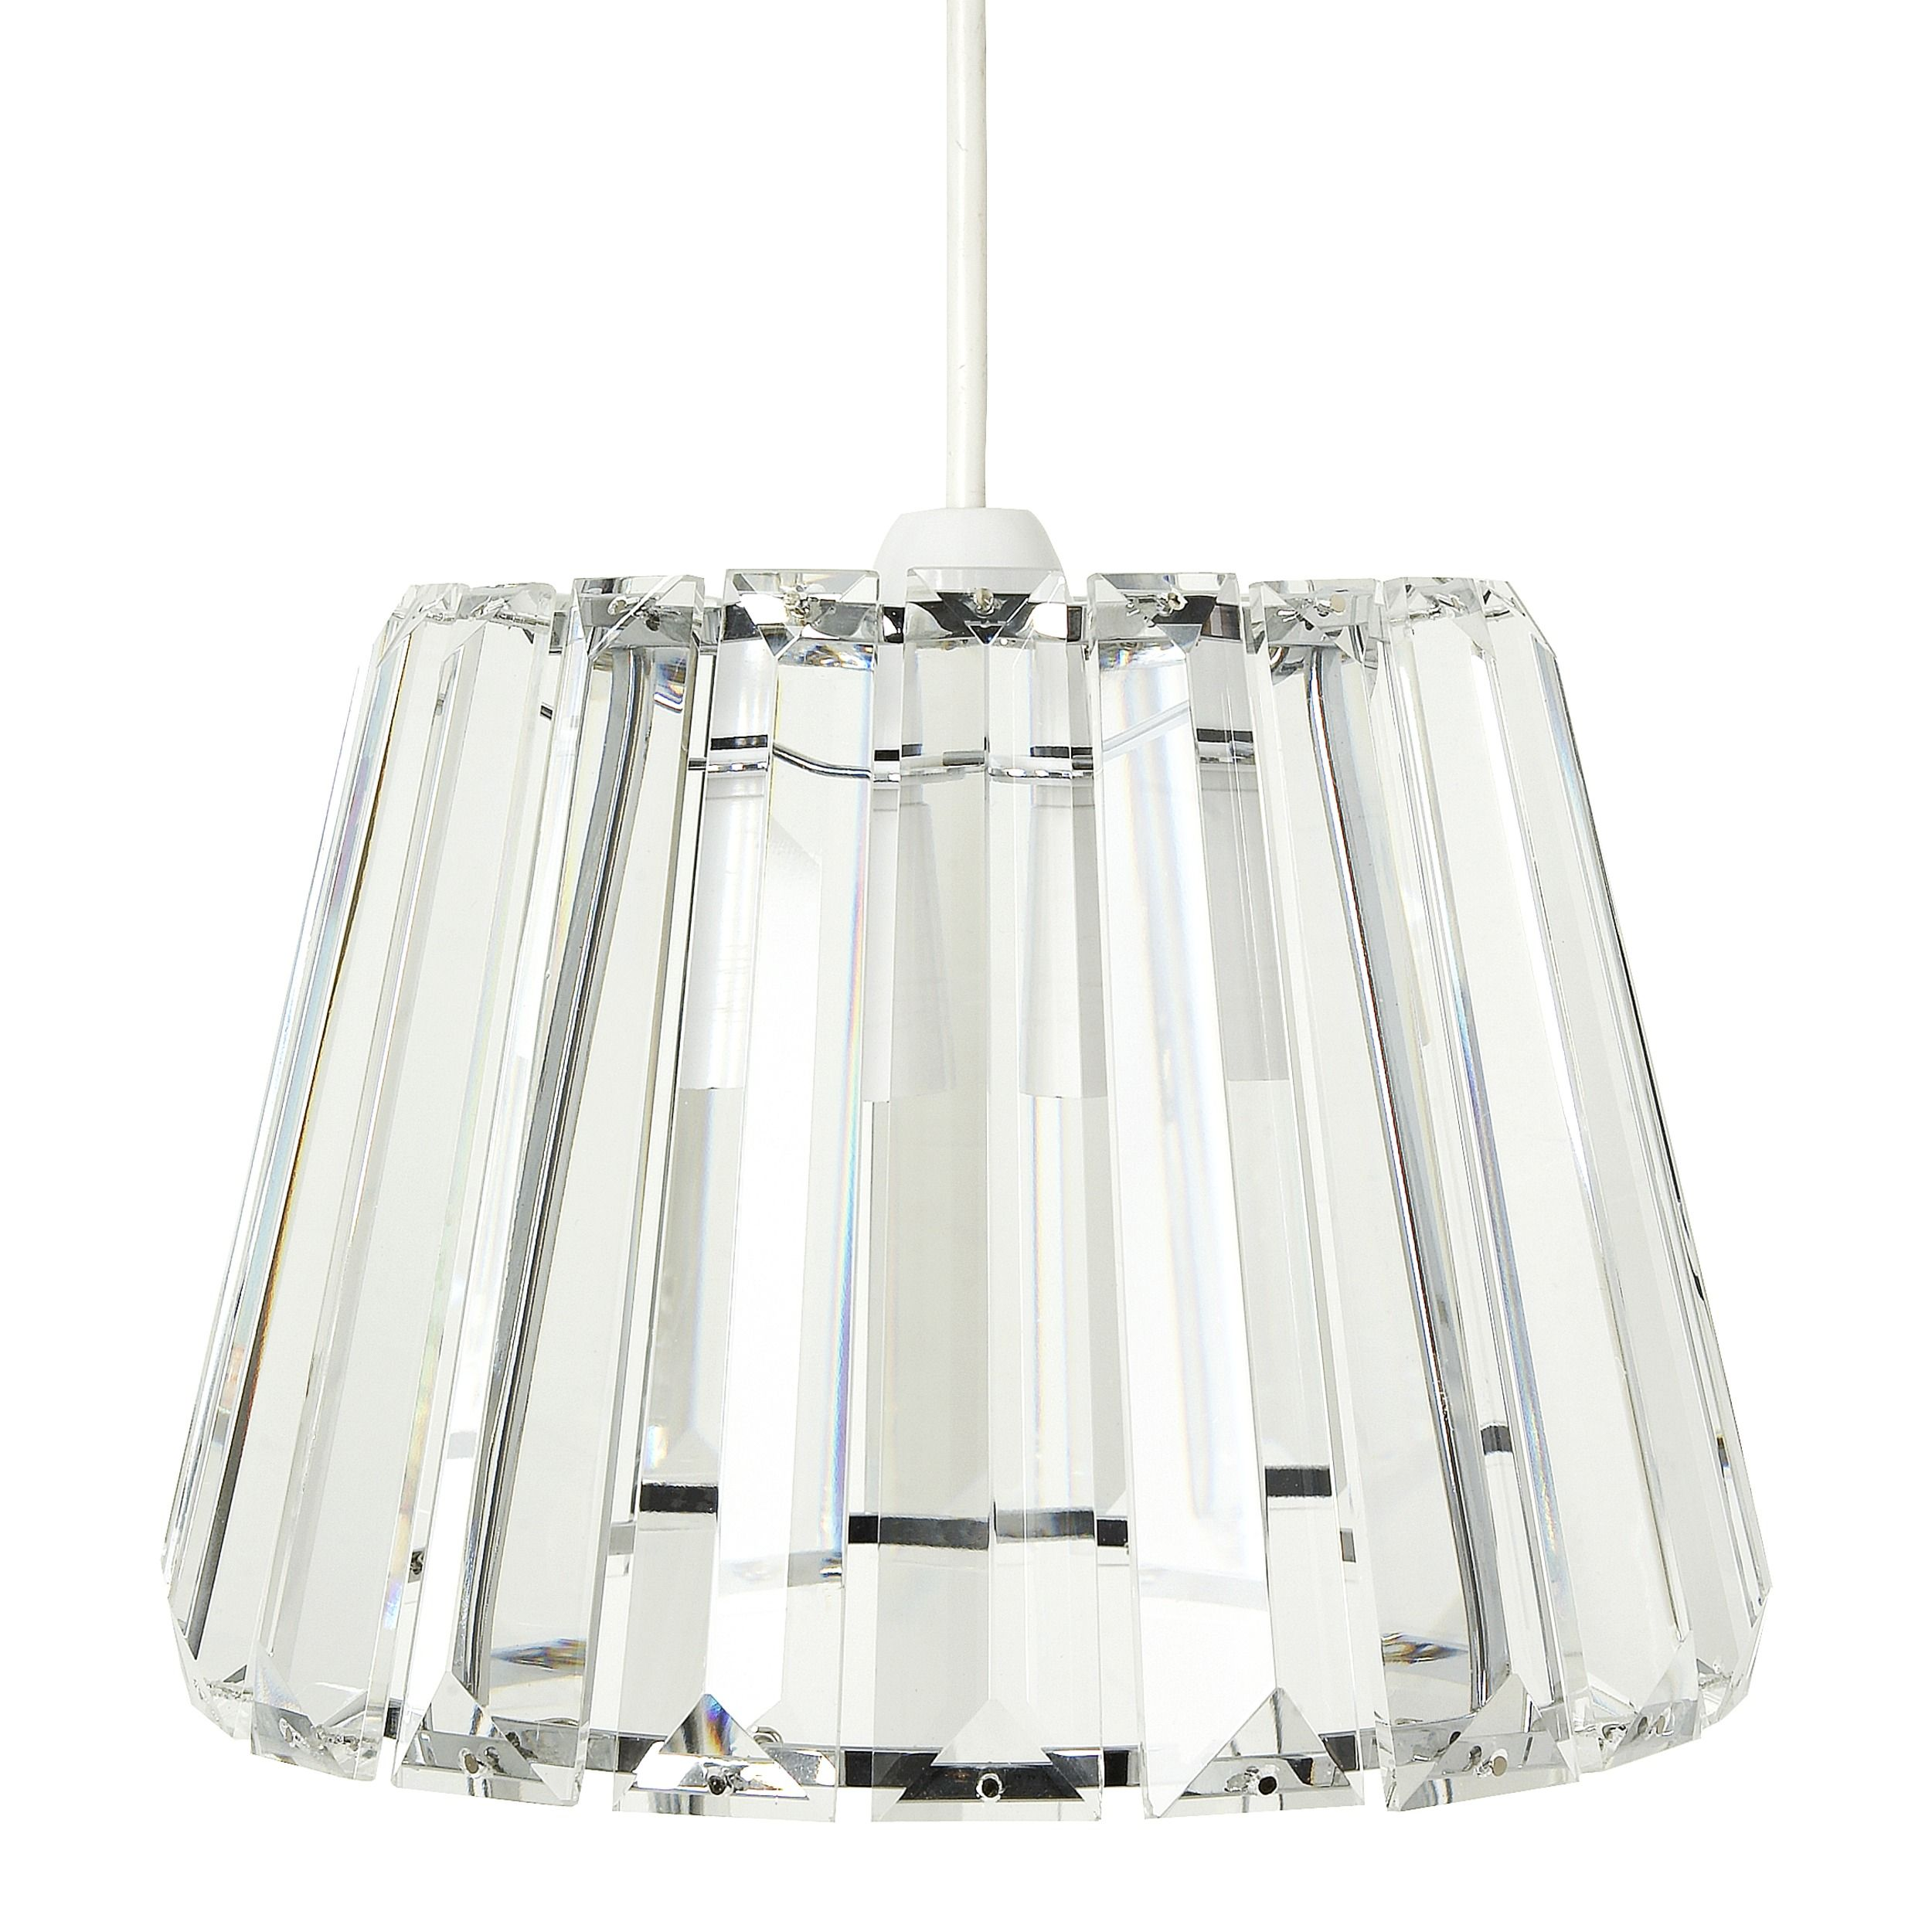 Google image result for httplauraashleycontentebiz capri glass ceiling shade a stylish collection combining chrome style arms and fittings with elegant glass rod shades ceiling lights arubaitofo Choice Image